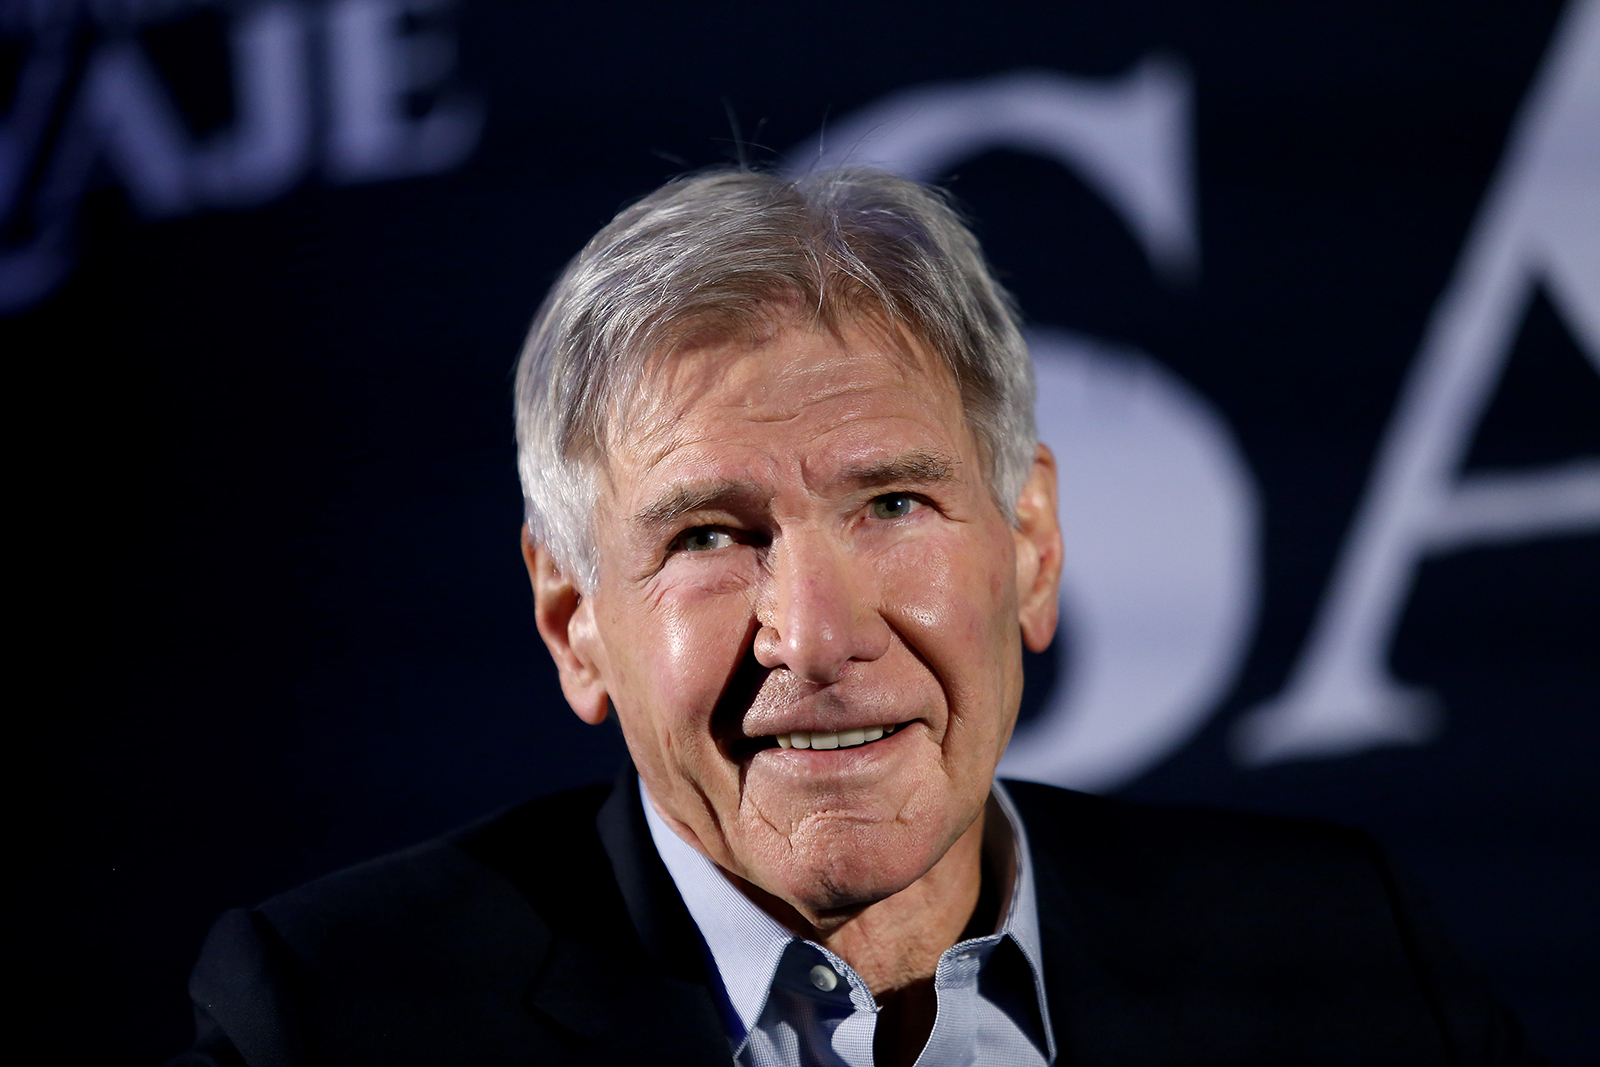 Harrison Ford smiles during a press conference to present the film 'El Llamado Salvaje' on February 5, in Mexico City.